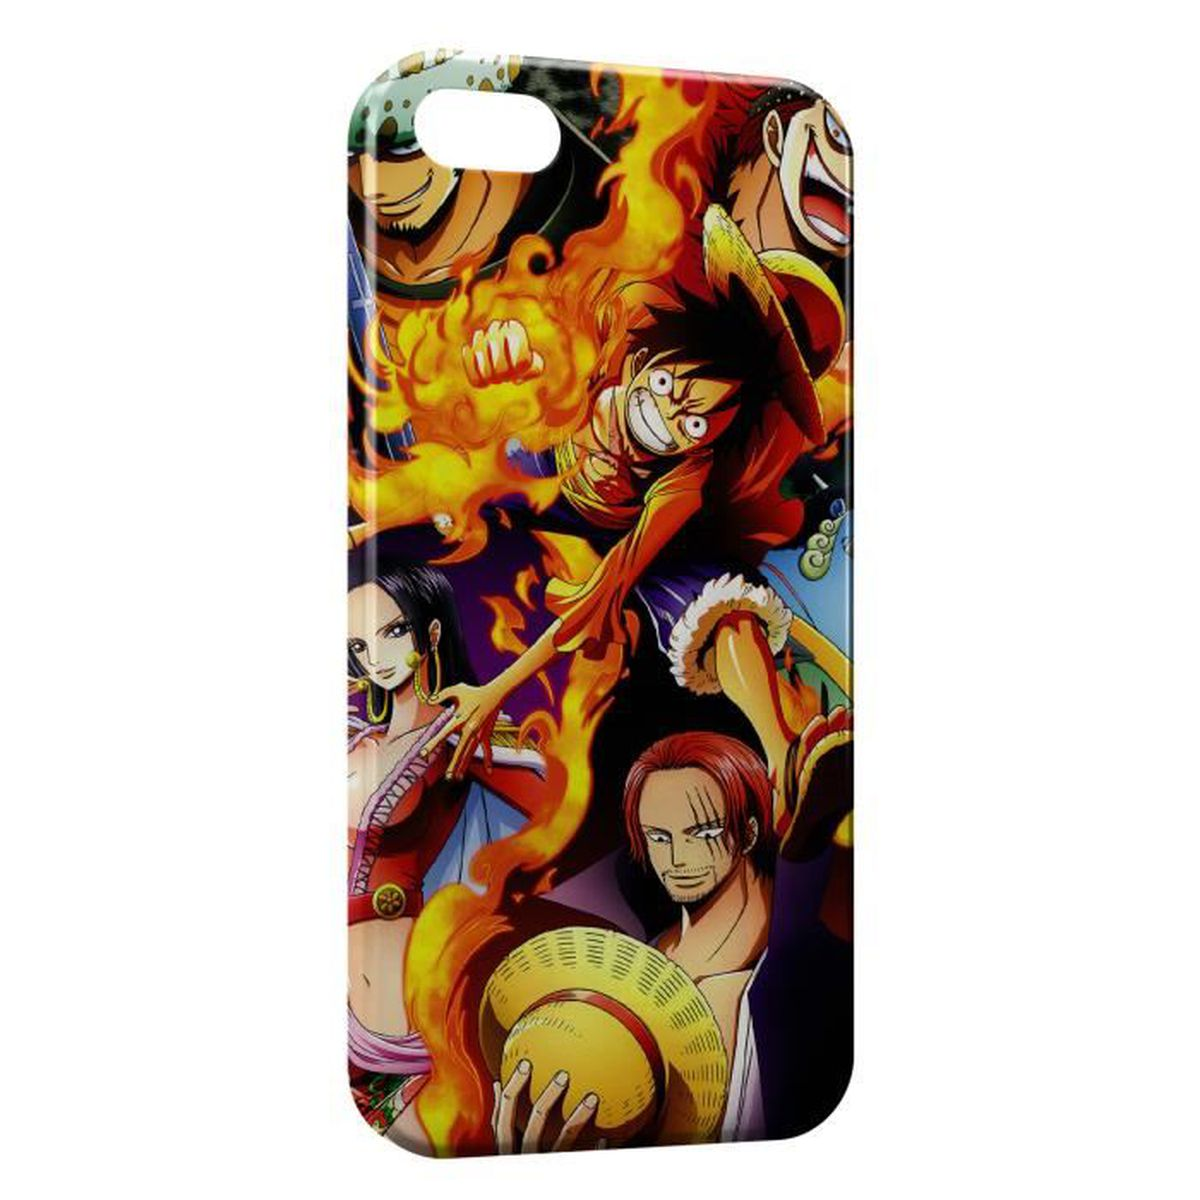 coque iphone 5 5s one piece manga 23